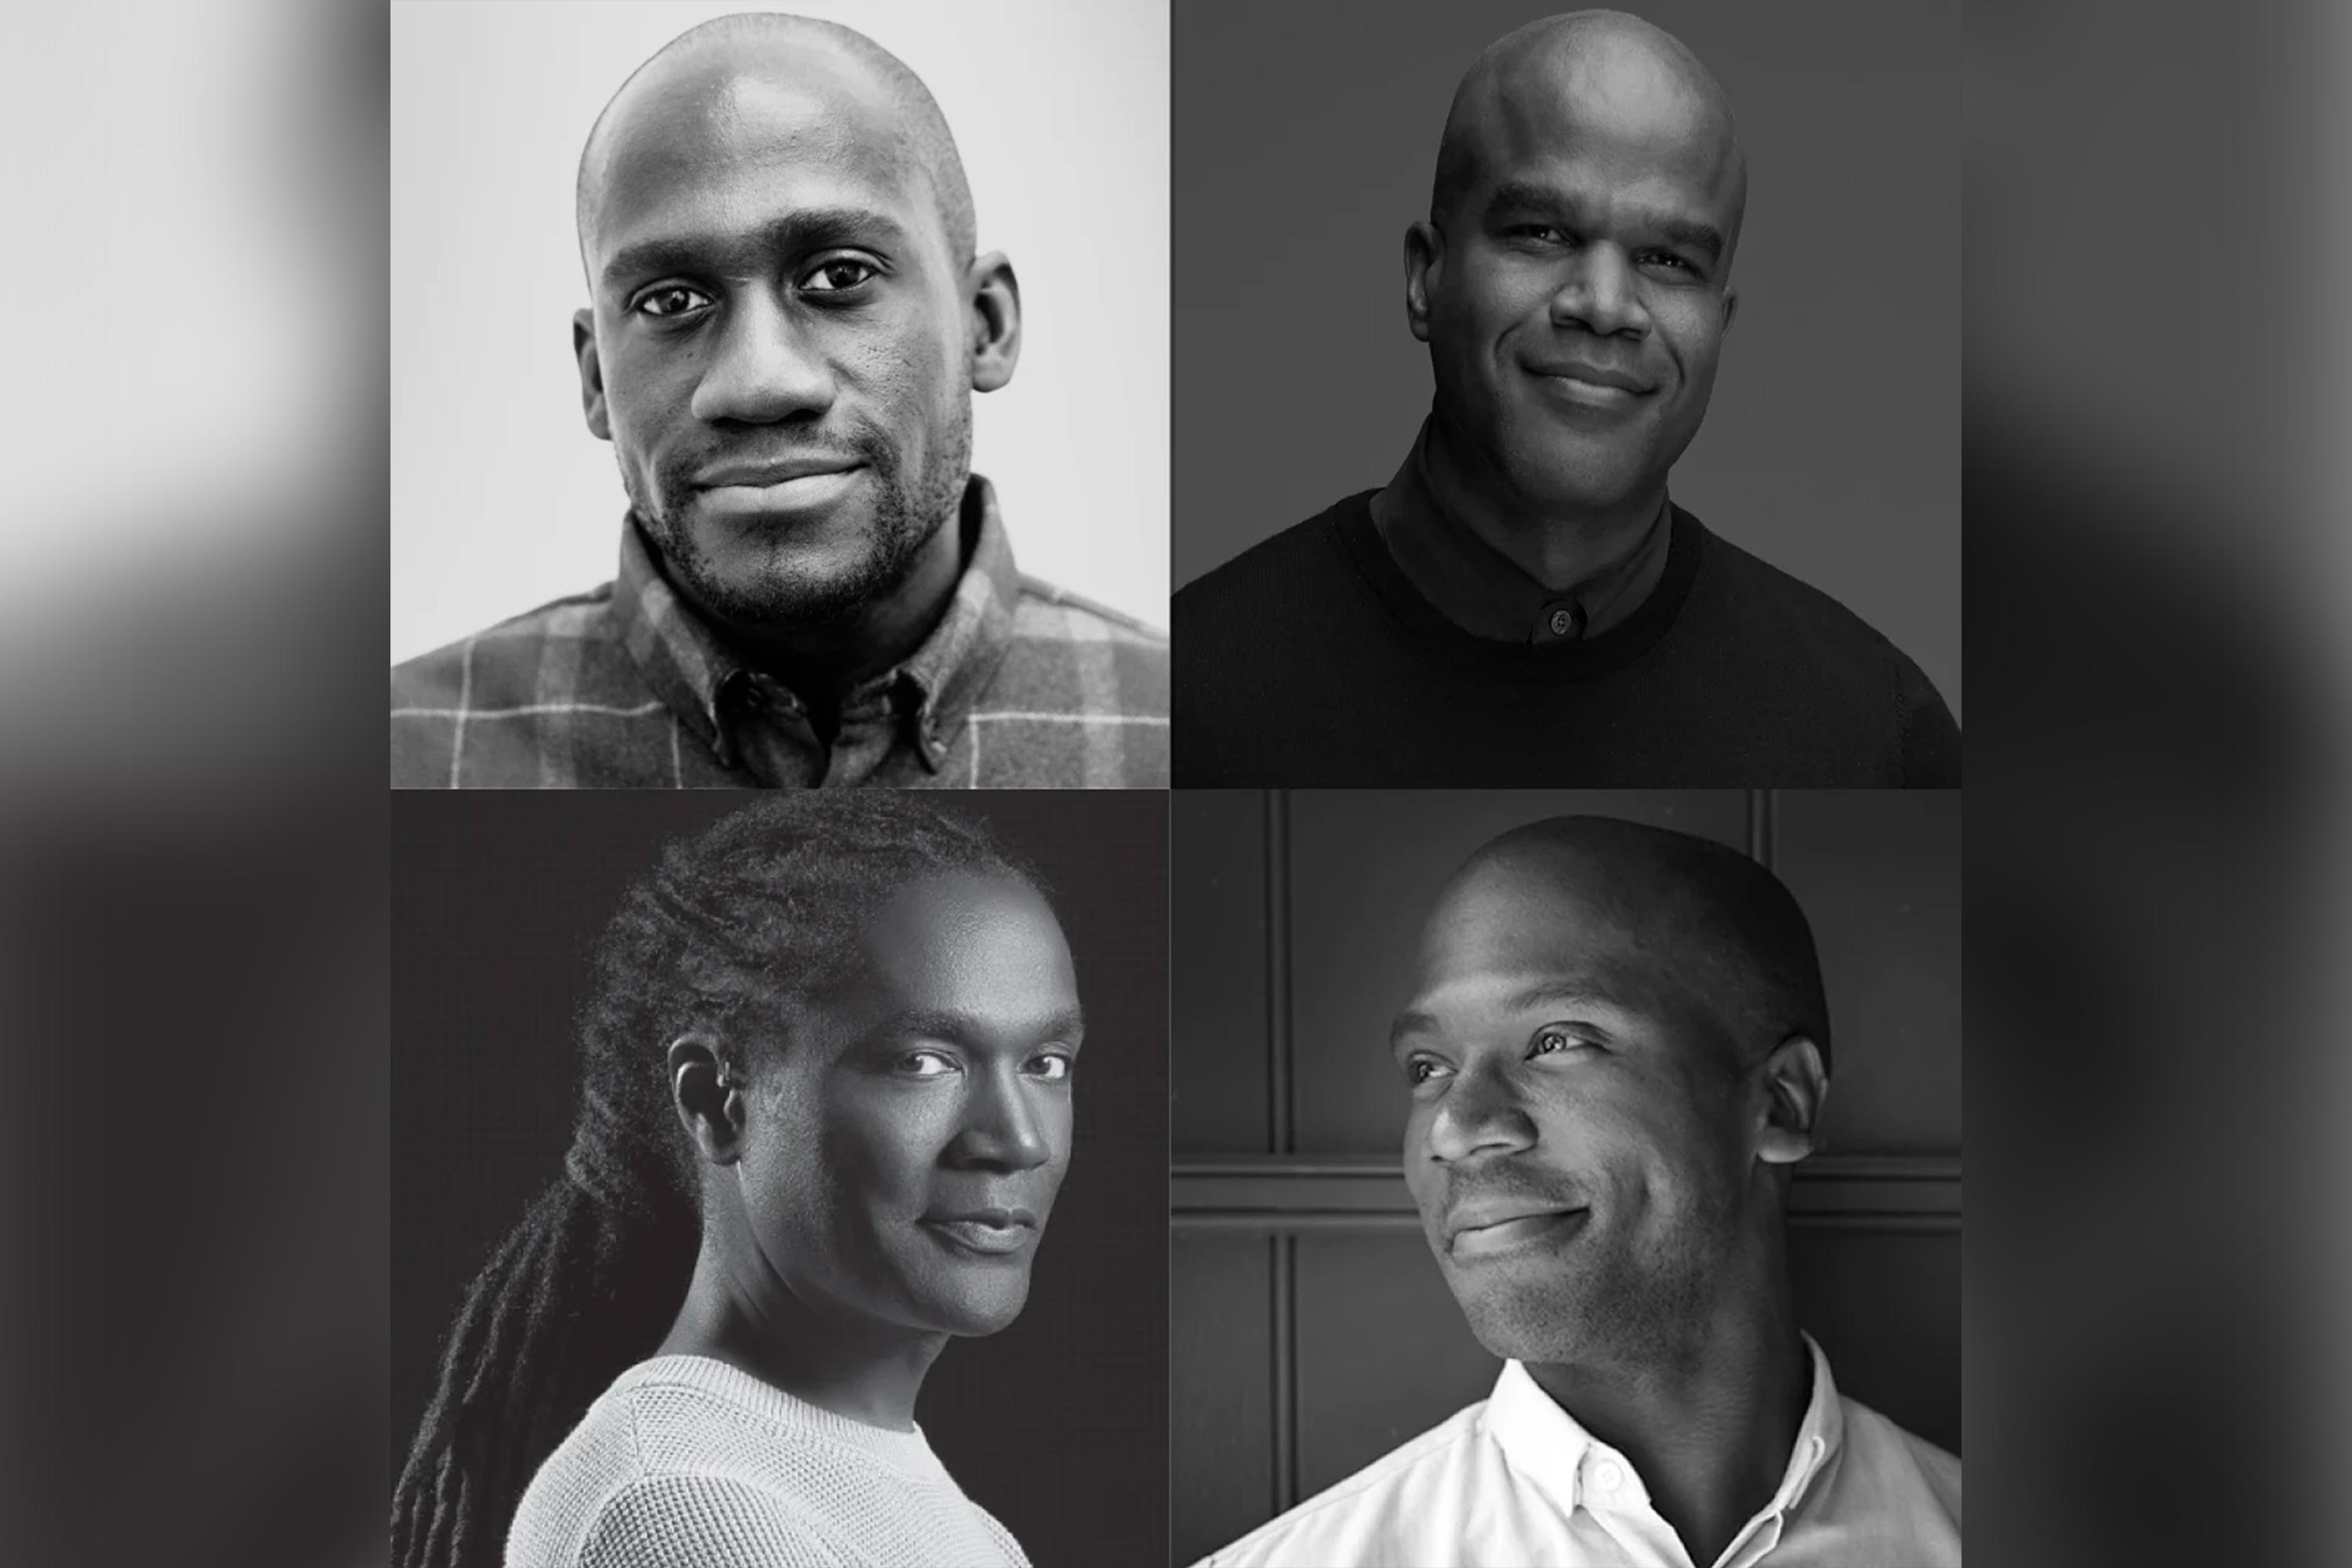 The founders of Saturday Morning release letter to the industry calling for action to tackle discrimination and racism